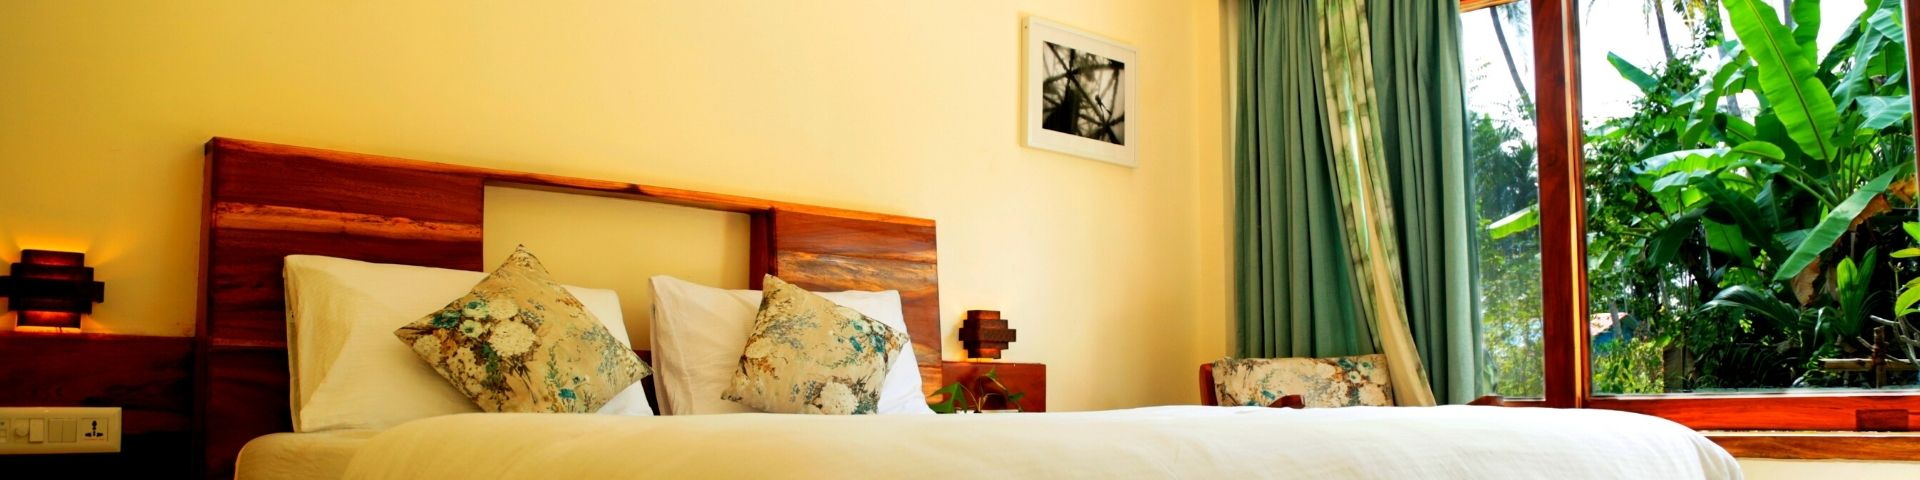 Standard Room | Comfortable Beach Side Accomodation in Havelock | Gypsy Divers Dive Resort